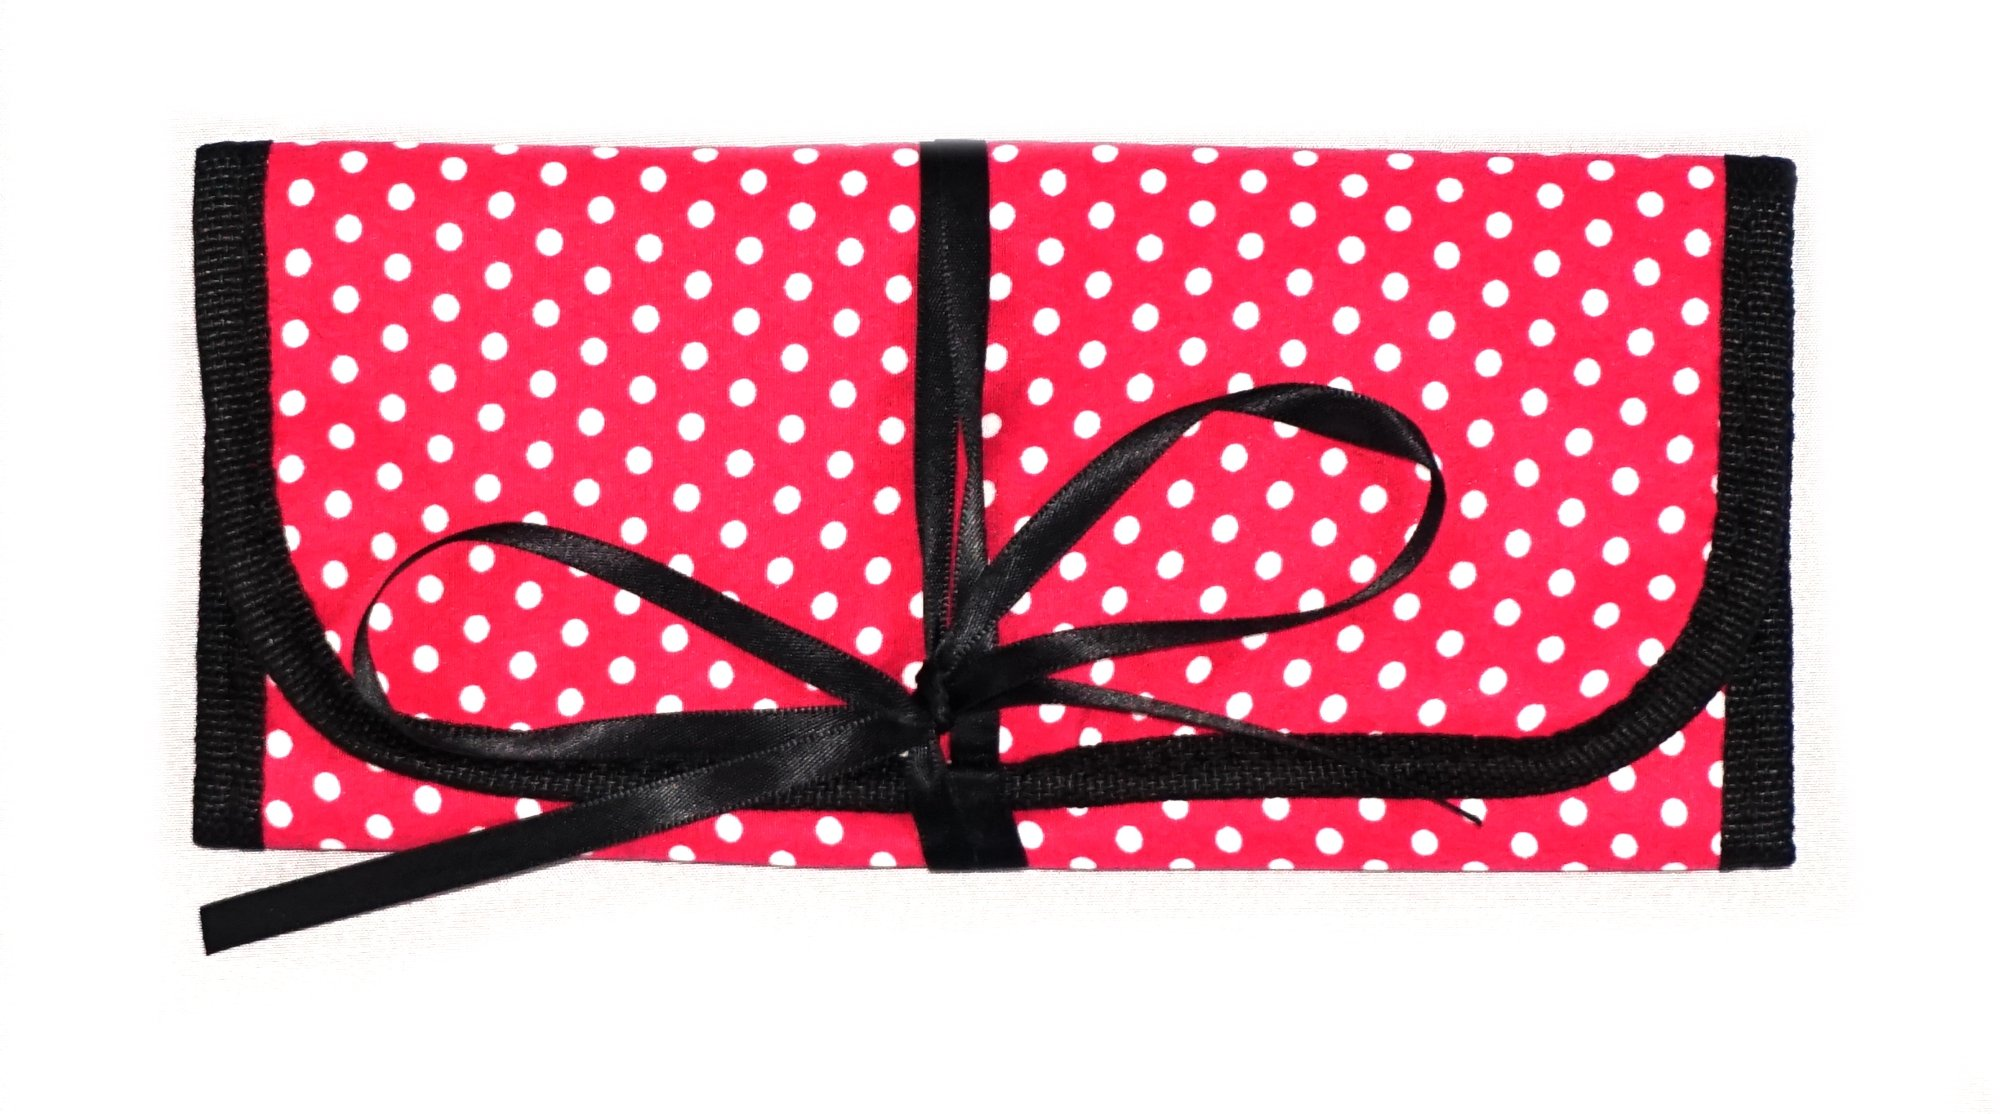 8'' x 11'' Hanging Travel Jewelry & Accessories Organizer Roll Bag (White Polka Dots & Pink/Pink)